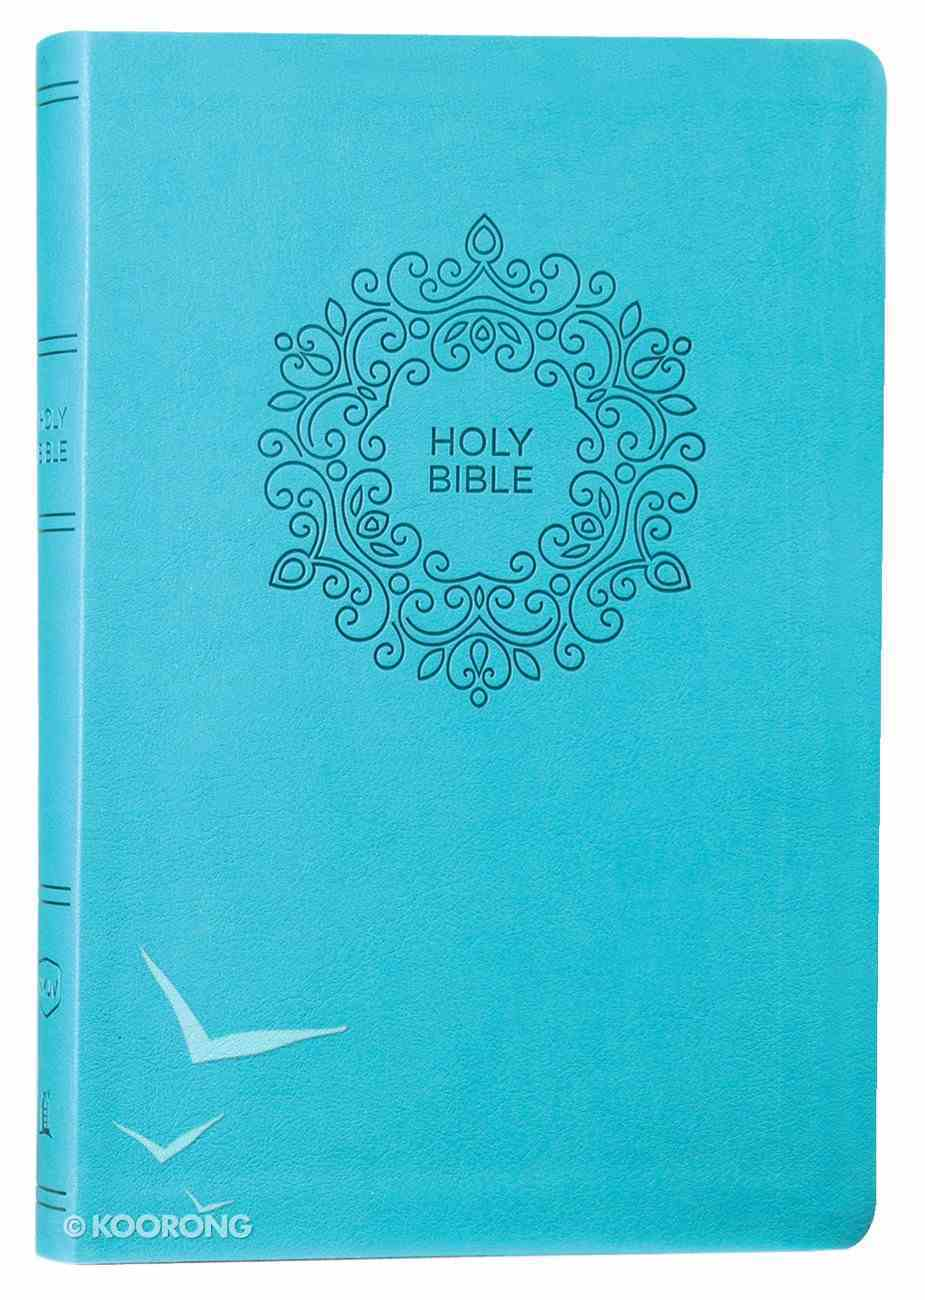 NKJV Value Thinline Bible Large Print Turquoise (Red Letter Edition) Premium Imitation Leather